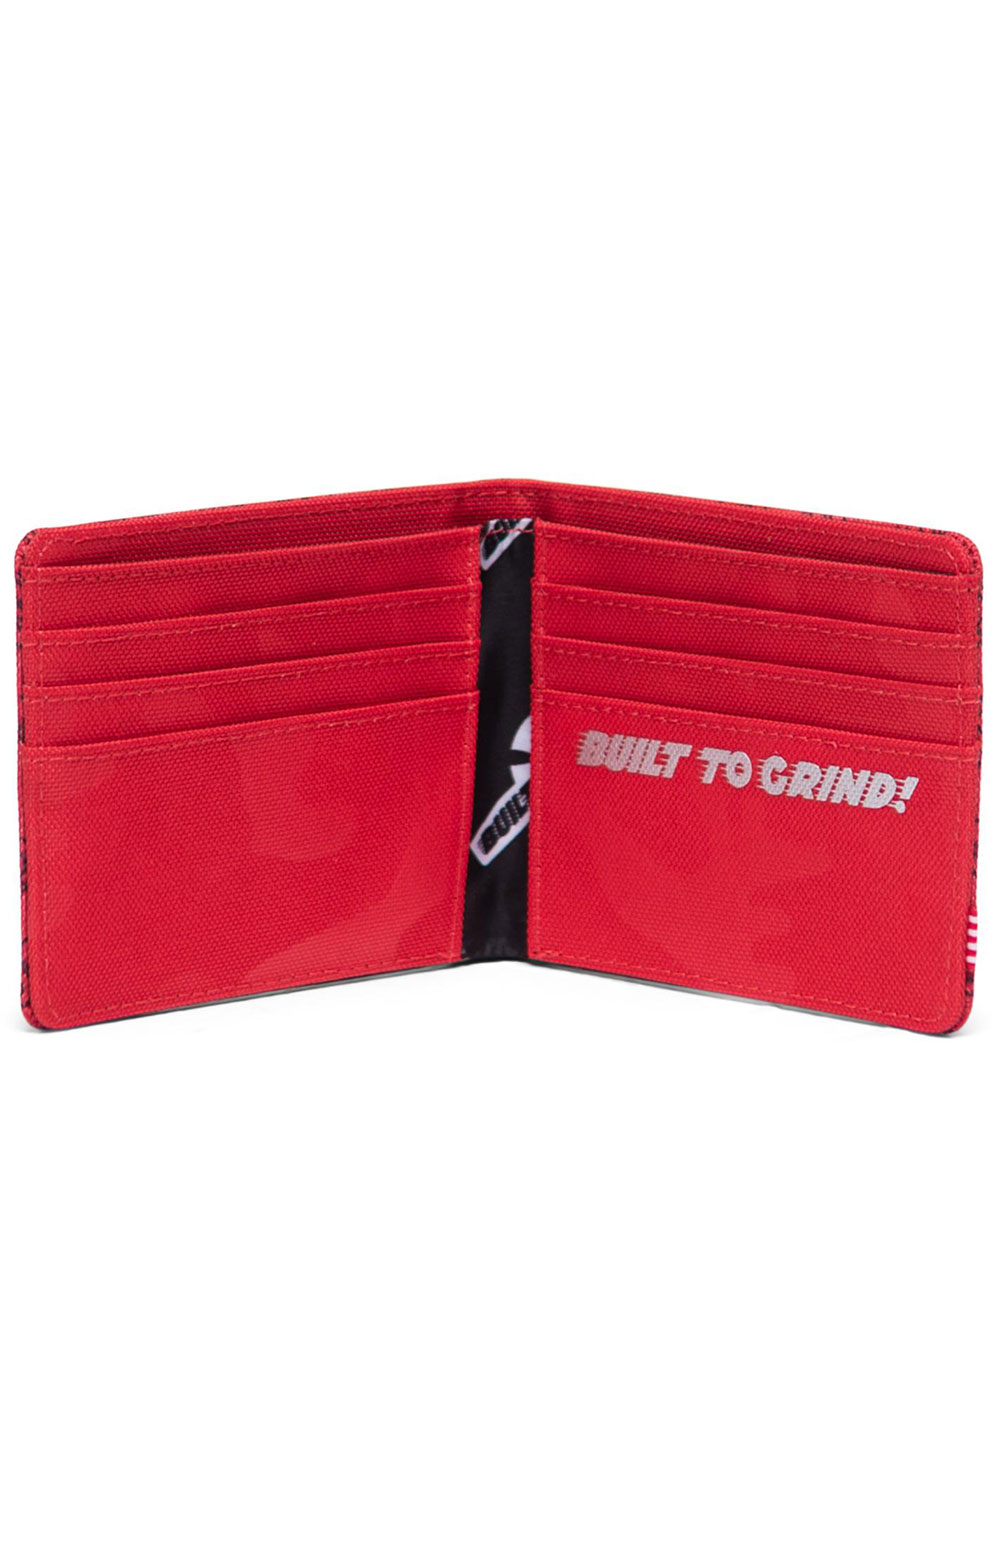 Roy Wallet - Independent Unified Red  3